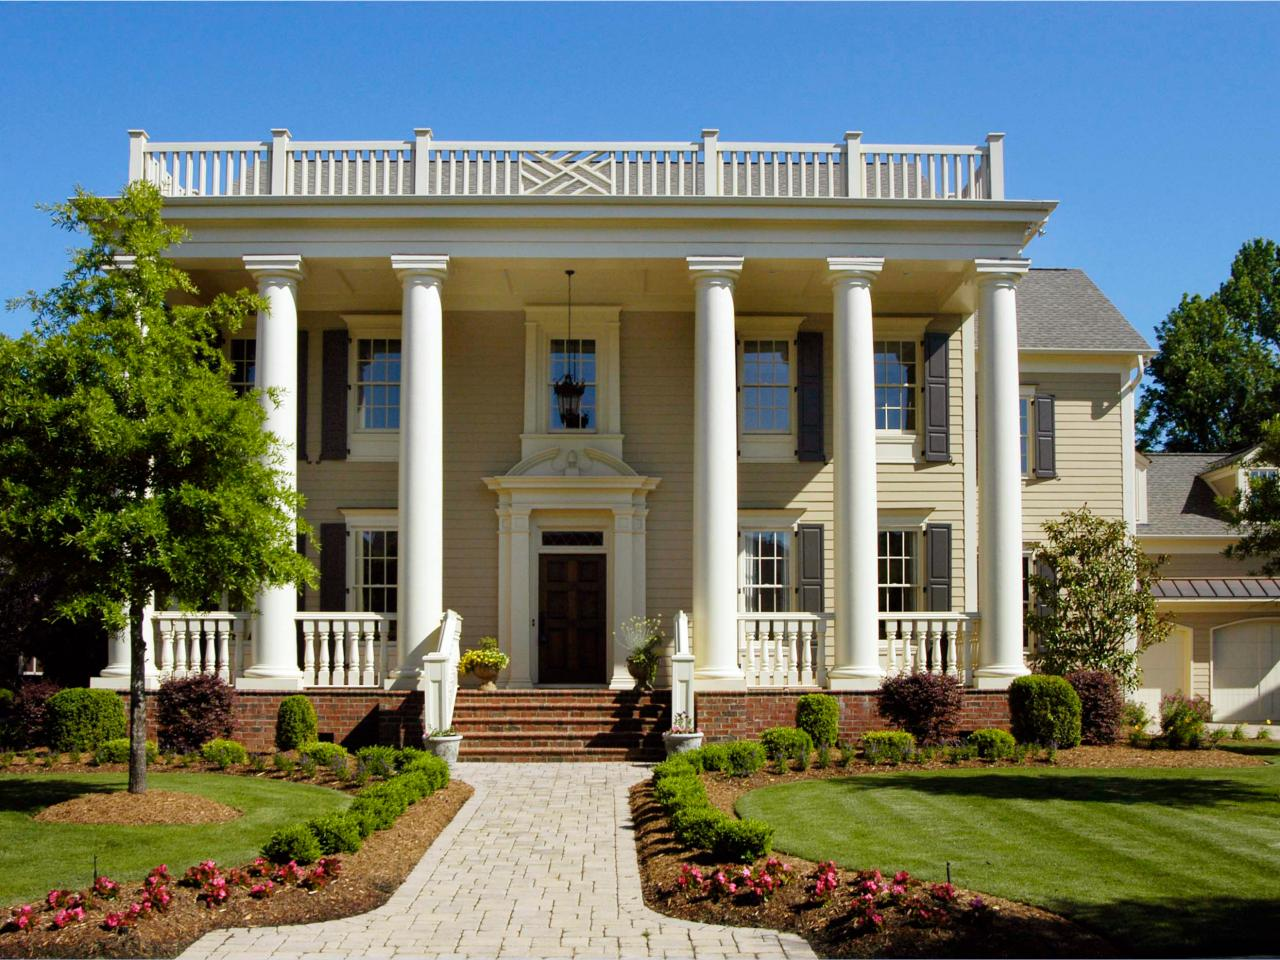 Greek Revival Architecture | HGTV